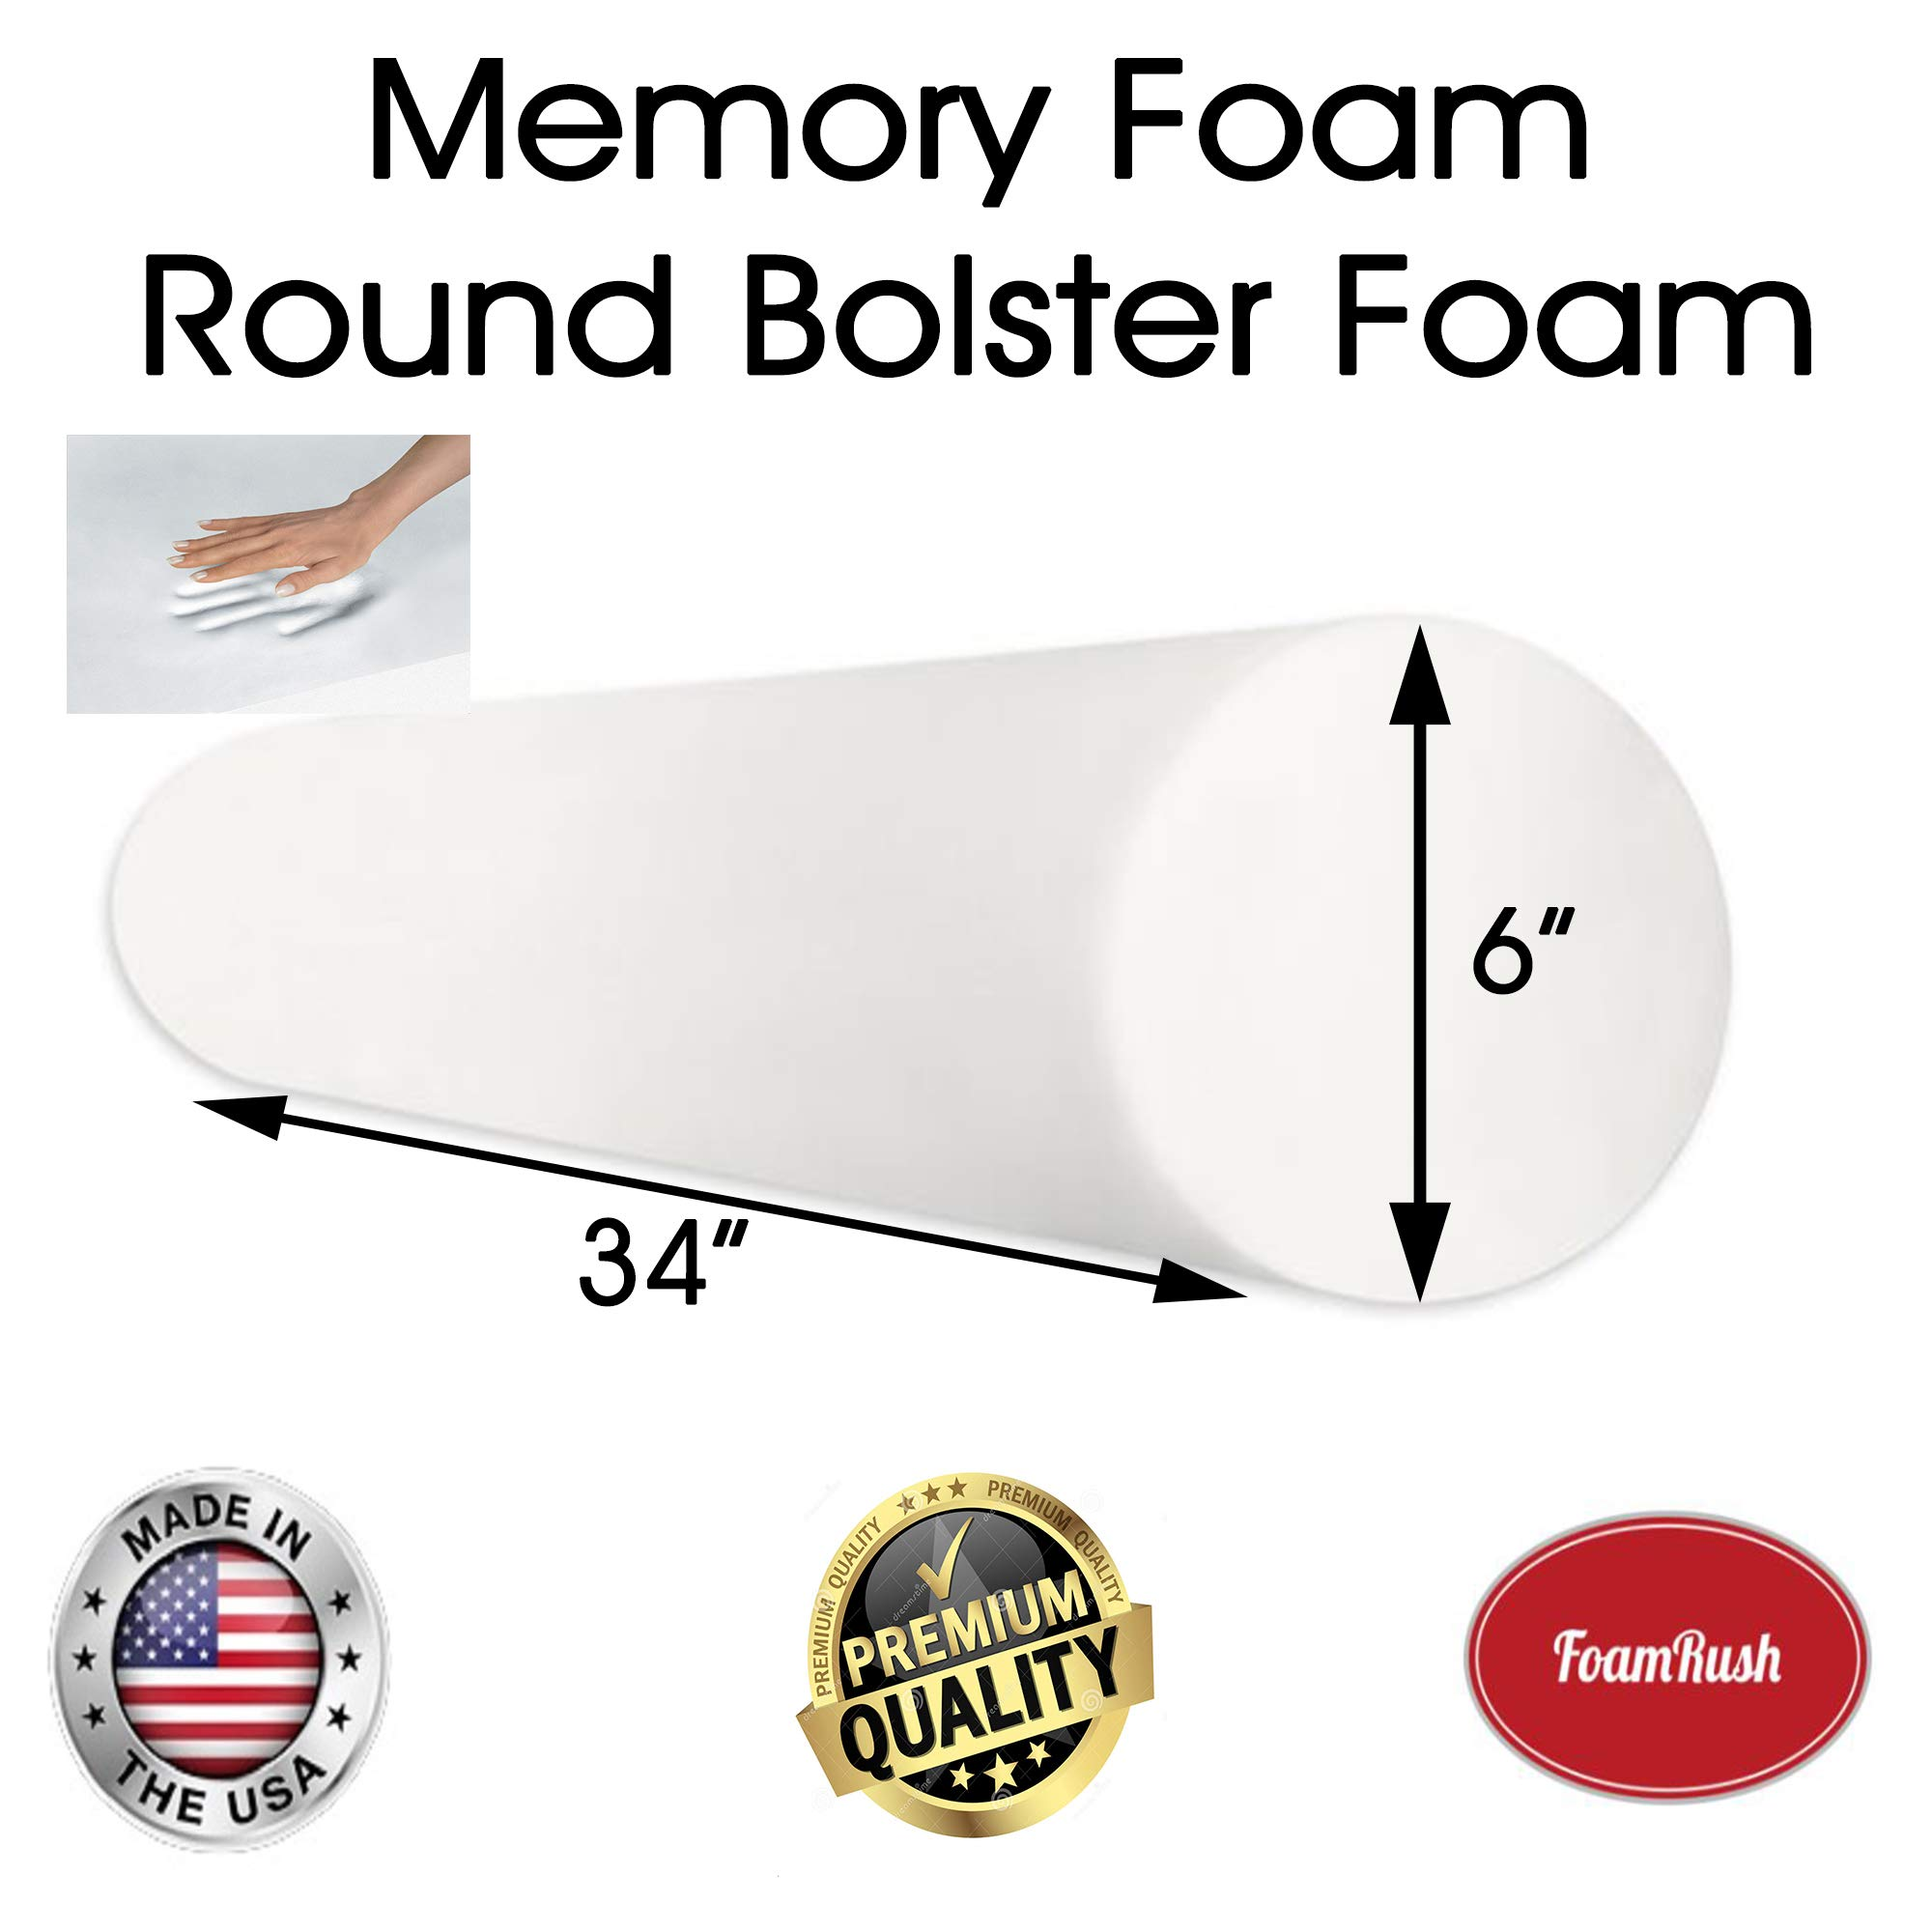 FoamRush 6'' Diameter x 34'' Long Premium Quality Round Bolster Memory Foam Roll Insert Replacement (Ideal for Home Accent Décor Positioning and General Fitness) Made in USA